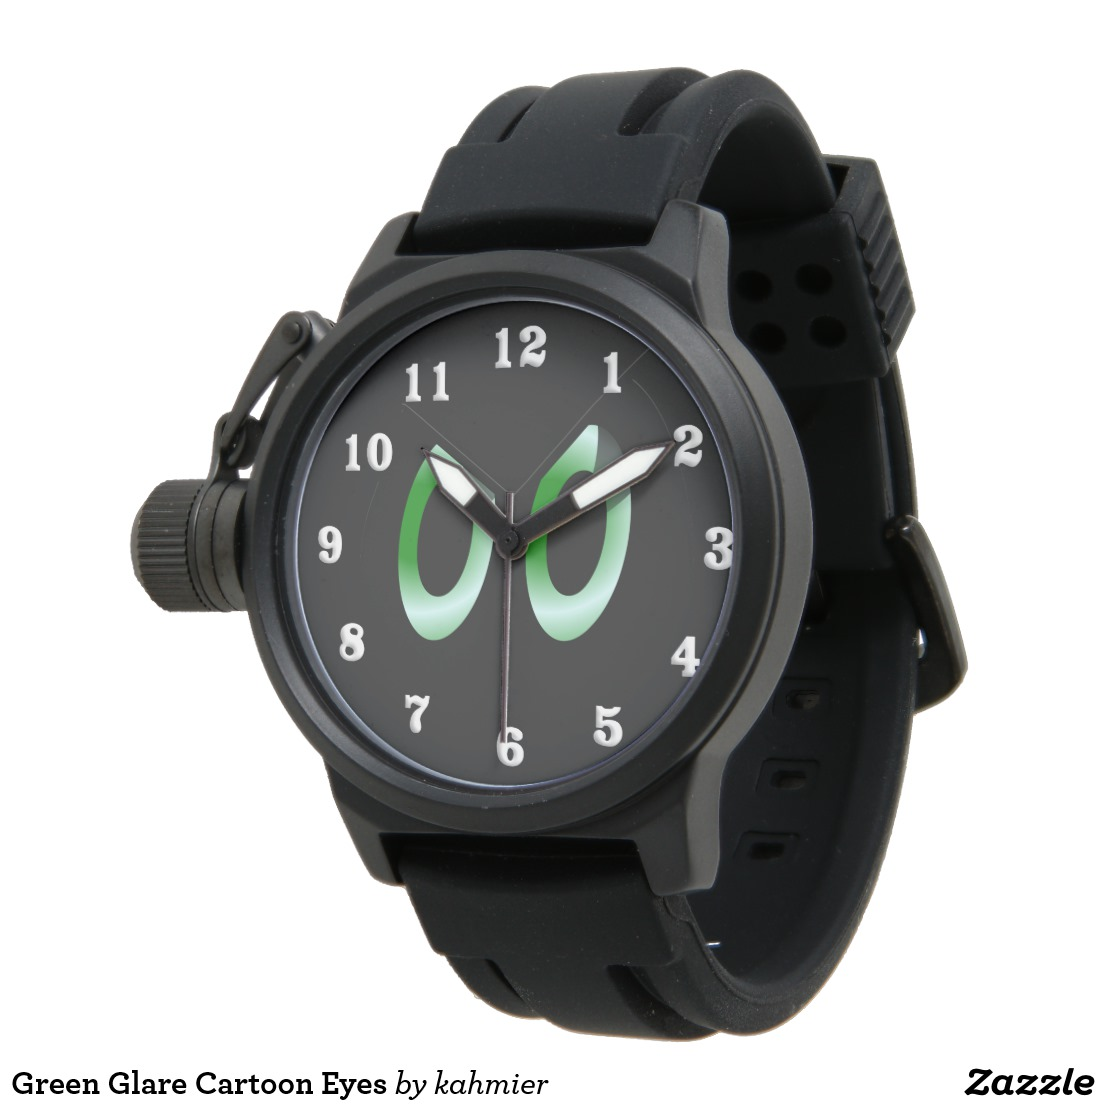 Green Glare Cartoon Eyes Watch